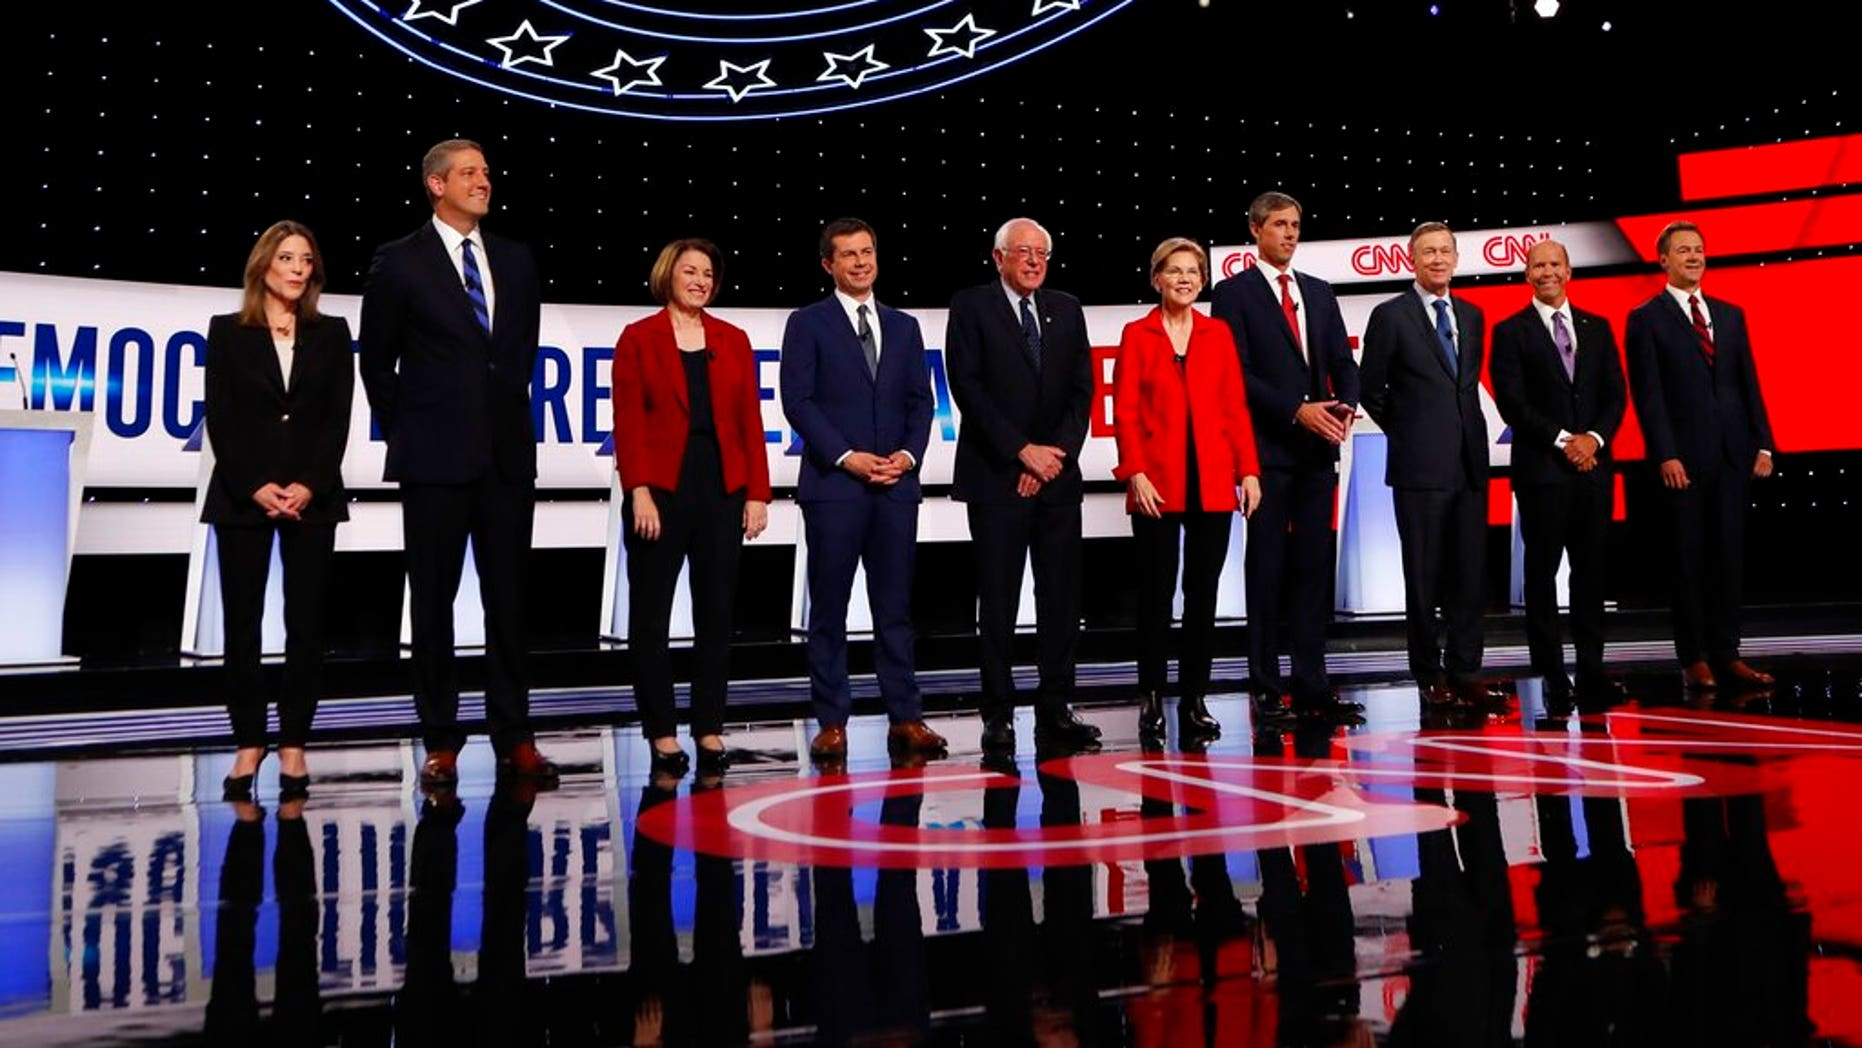 Westlake Legal Group DebateStage073119 Democratic Party divide on display at debate; A look at Tuesday's winners and losers fox-news/columns/fox-news-first fox news fnc/us fnc article 5b567591-c2ac-5f27-a5f3-386f26851591